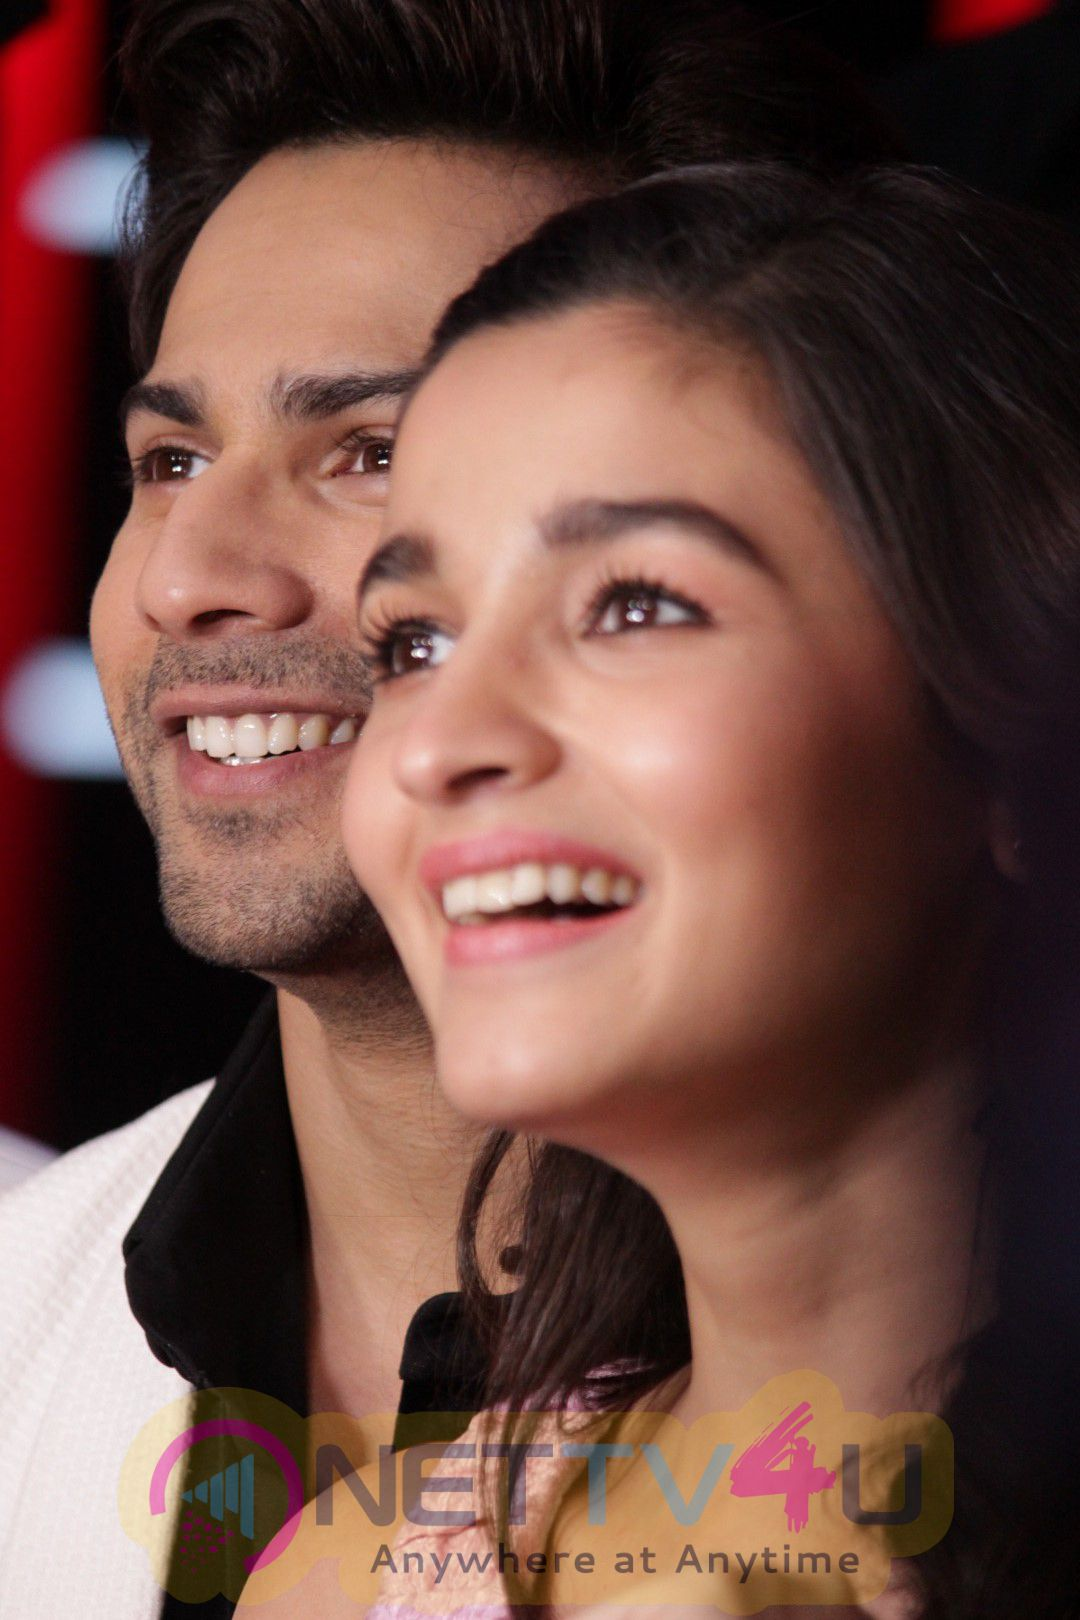 Star Of Badrinath Ki Dulhania Varun Dhawan & Alia Bhatt On Set Of Voice Of India-Photos